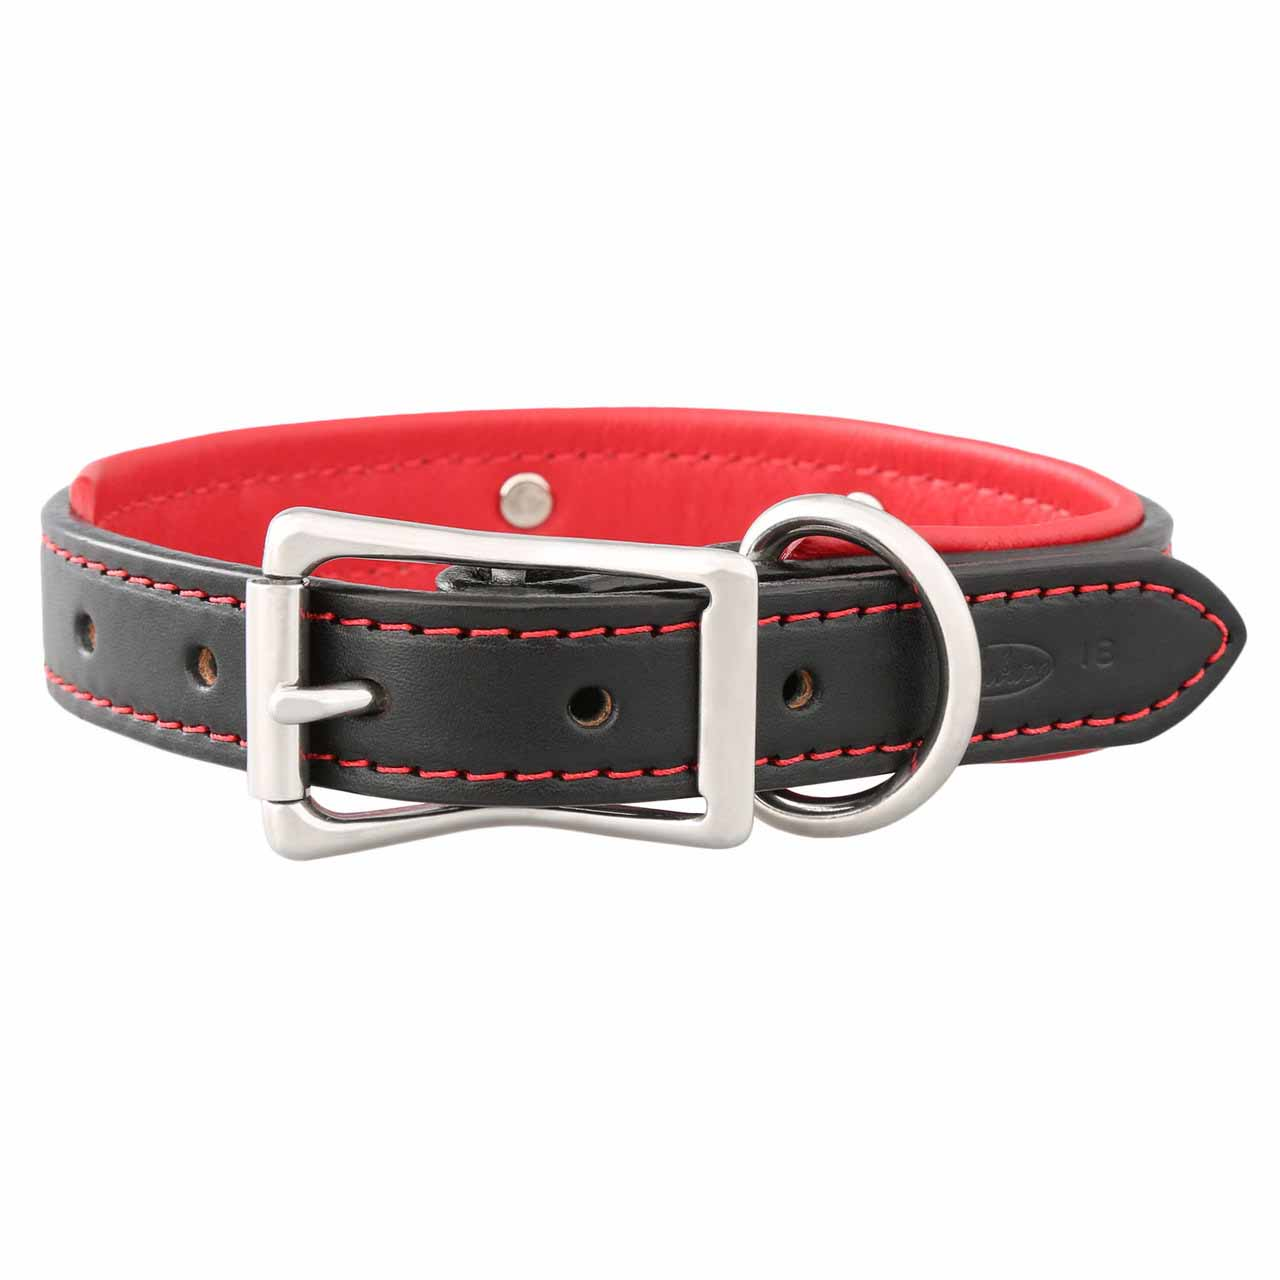 Padded Leather Collar with Nameplate Red Stainless Steel Buckle View